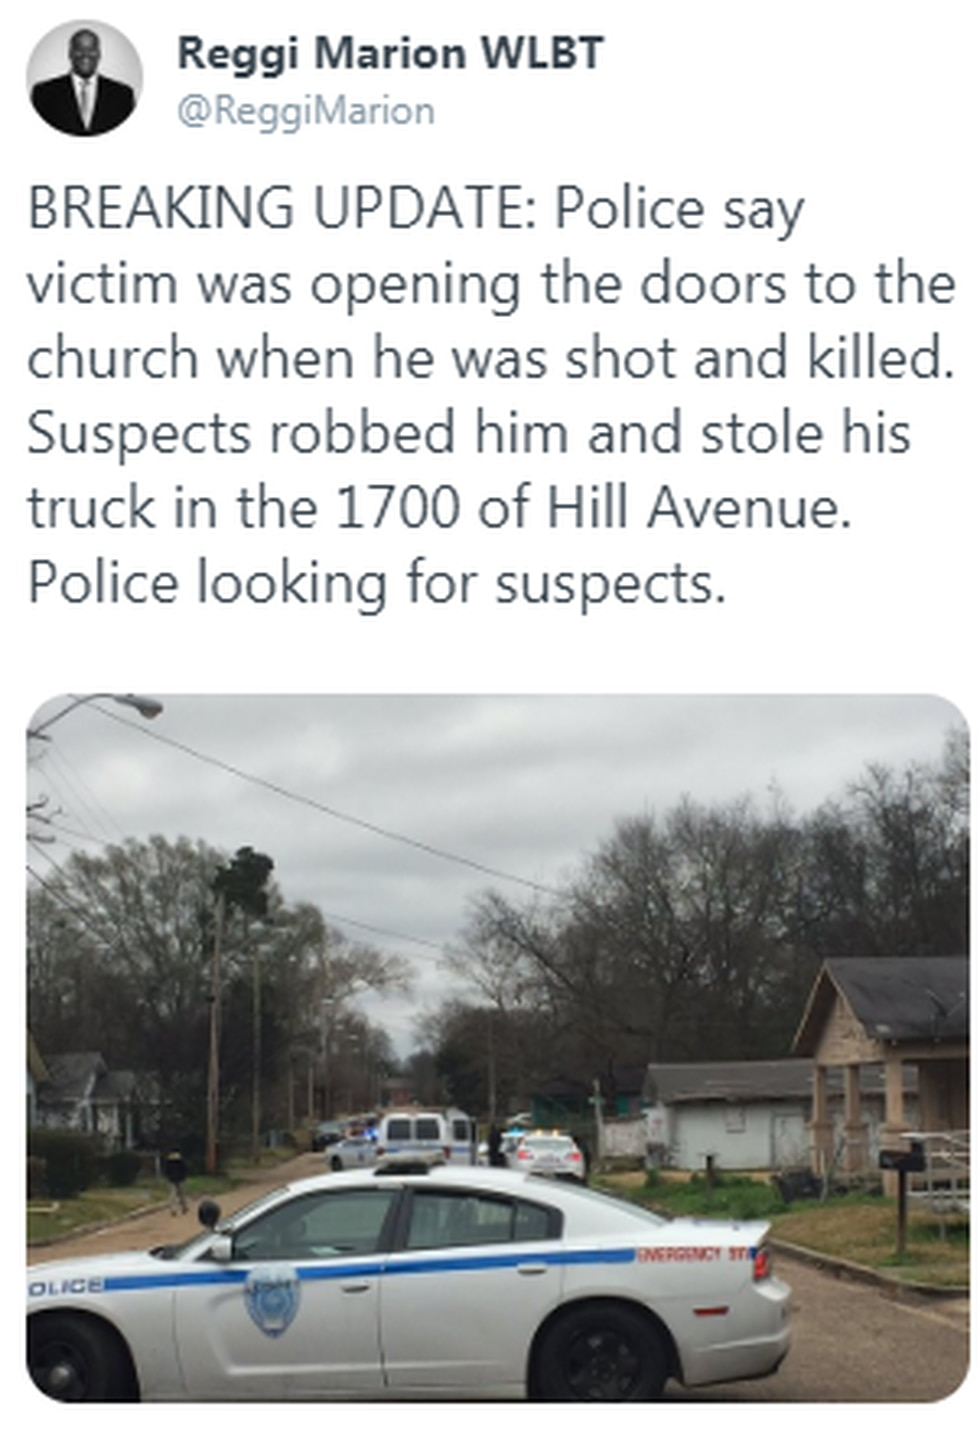 Anyone with information is asked to call Crime Stoppers at 601-355-TIPS(8477).